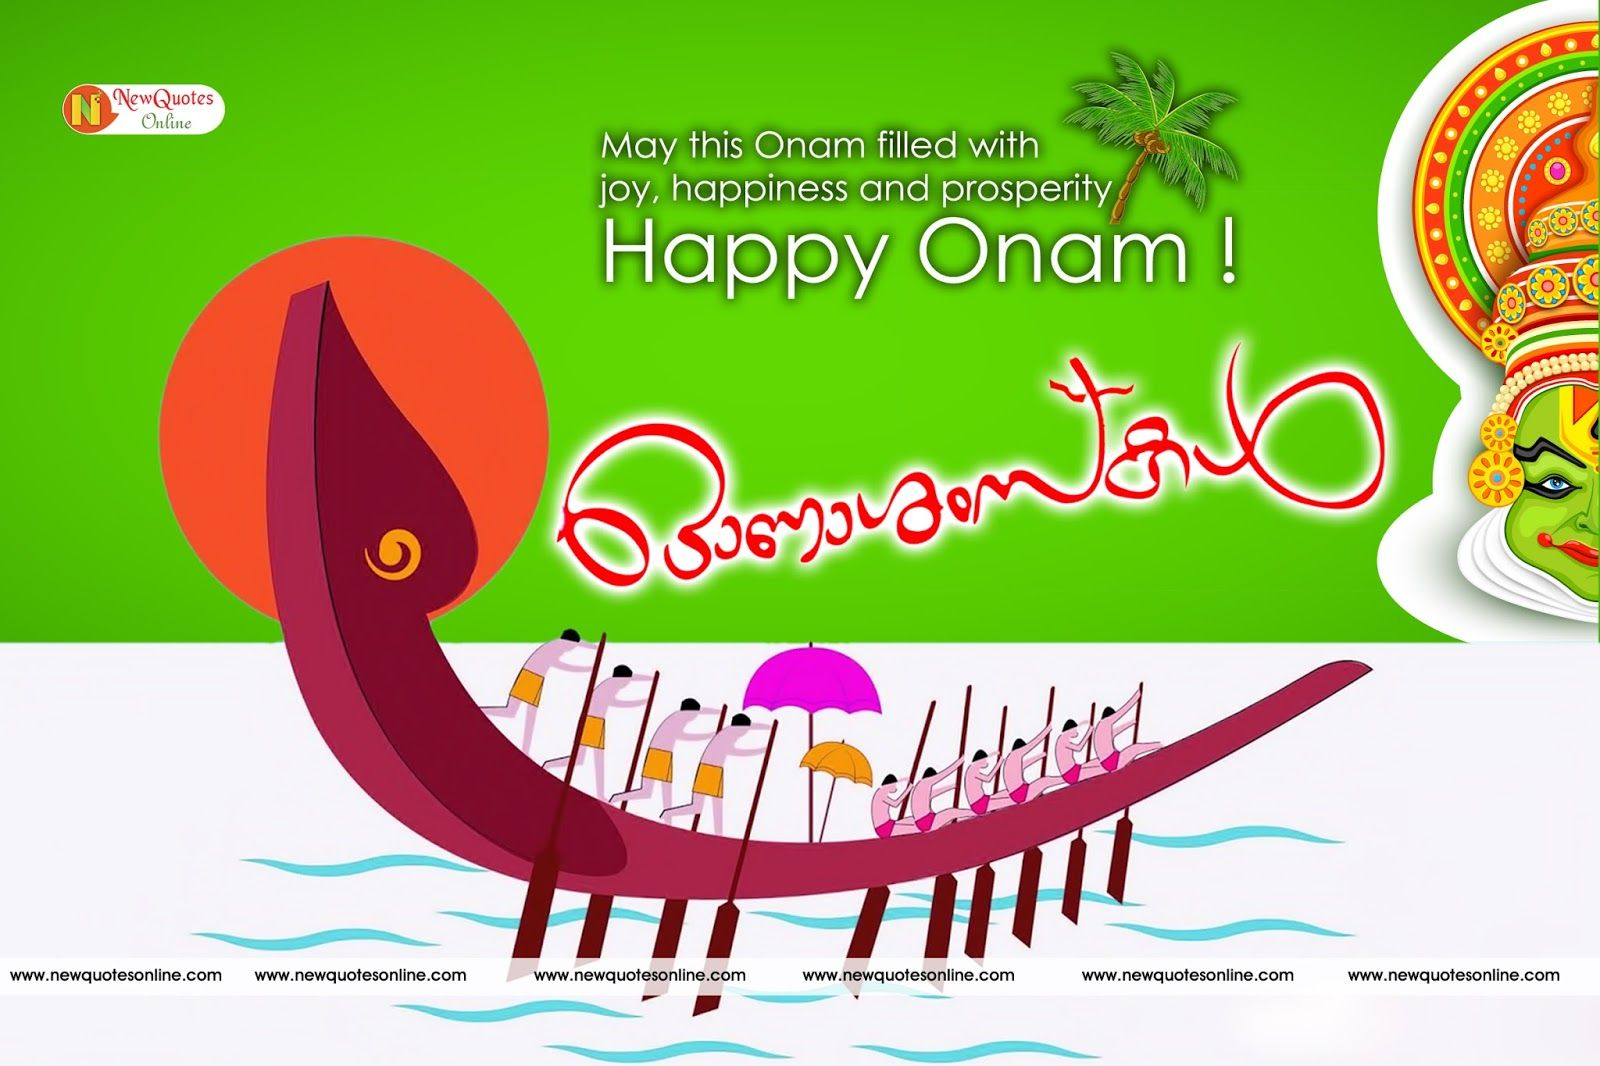 Pin by tarunn alex on onam quotes pinterest onam quotes and english onam quotes happy onam wishes kristyandbryce Image collections